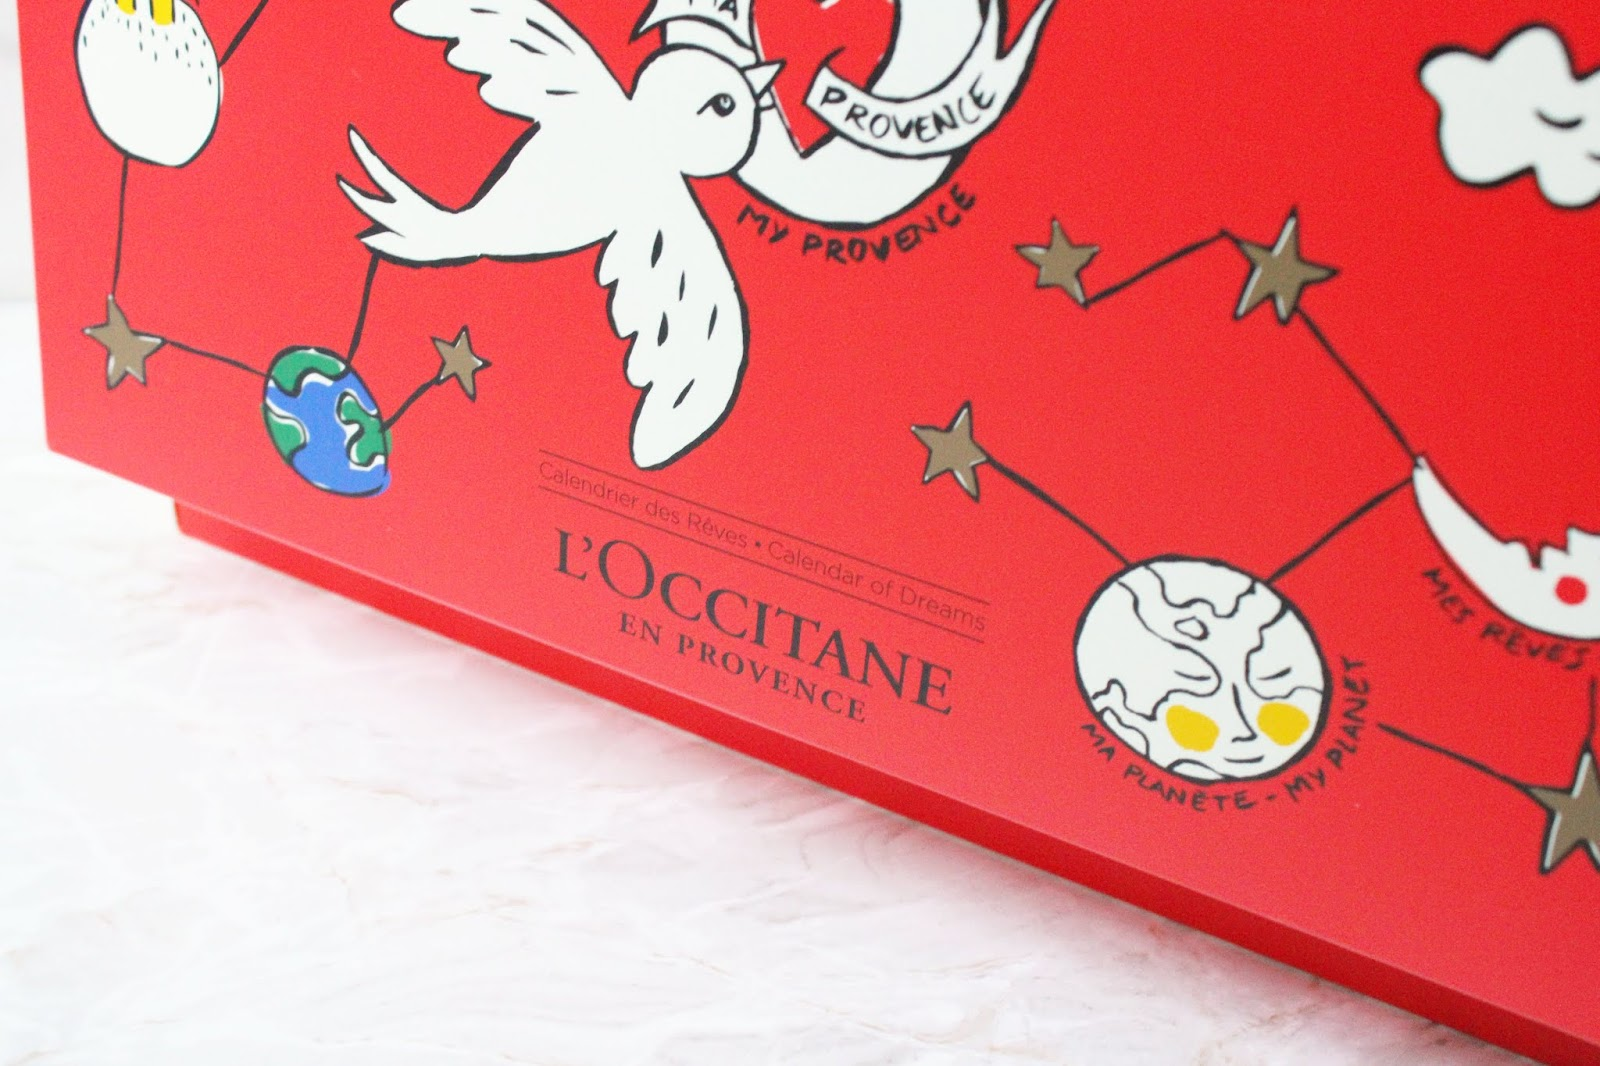 L'Occitane Classic Beauty Advent Calendar 2018